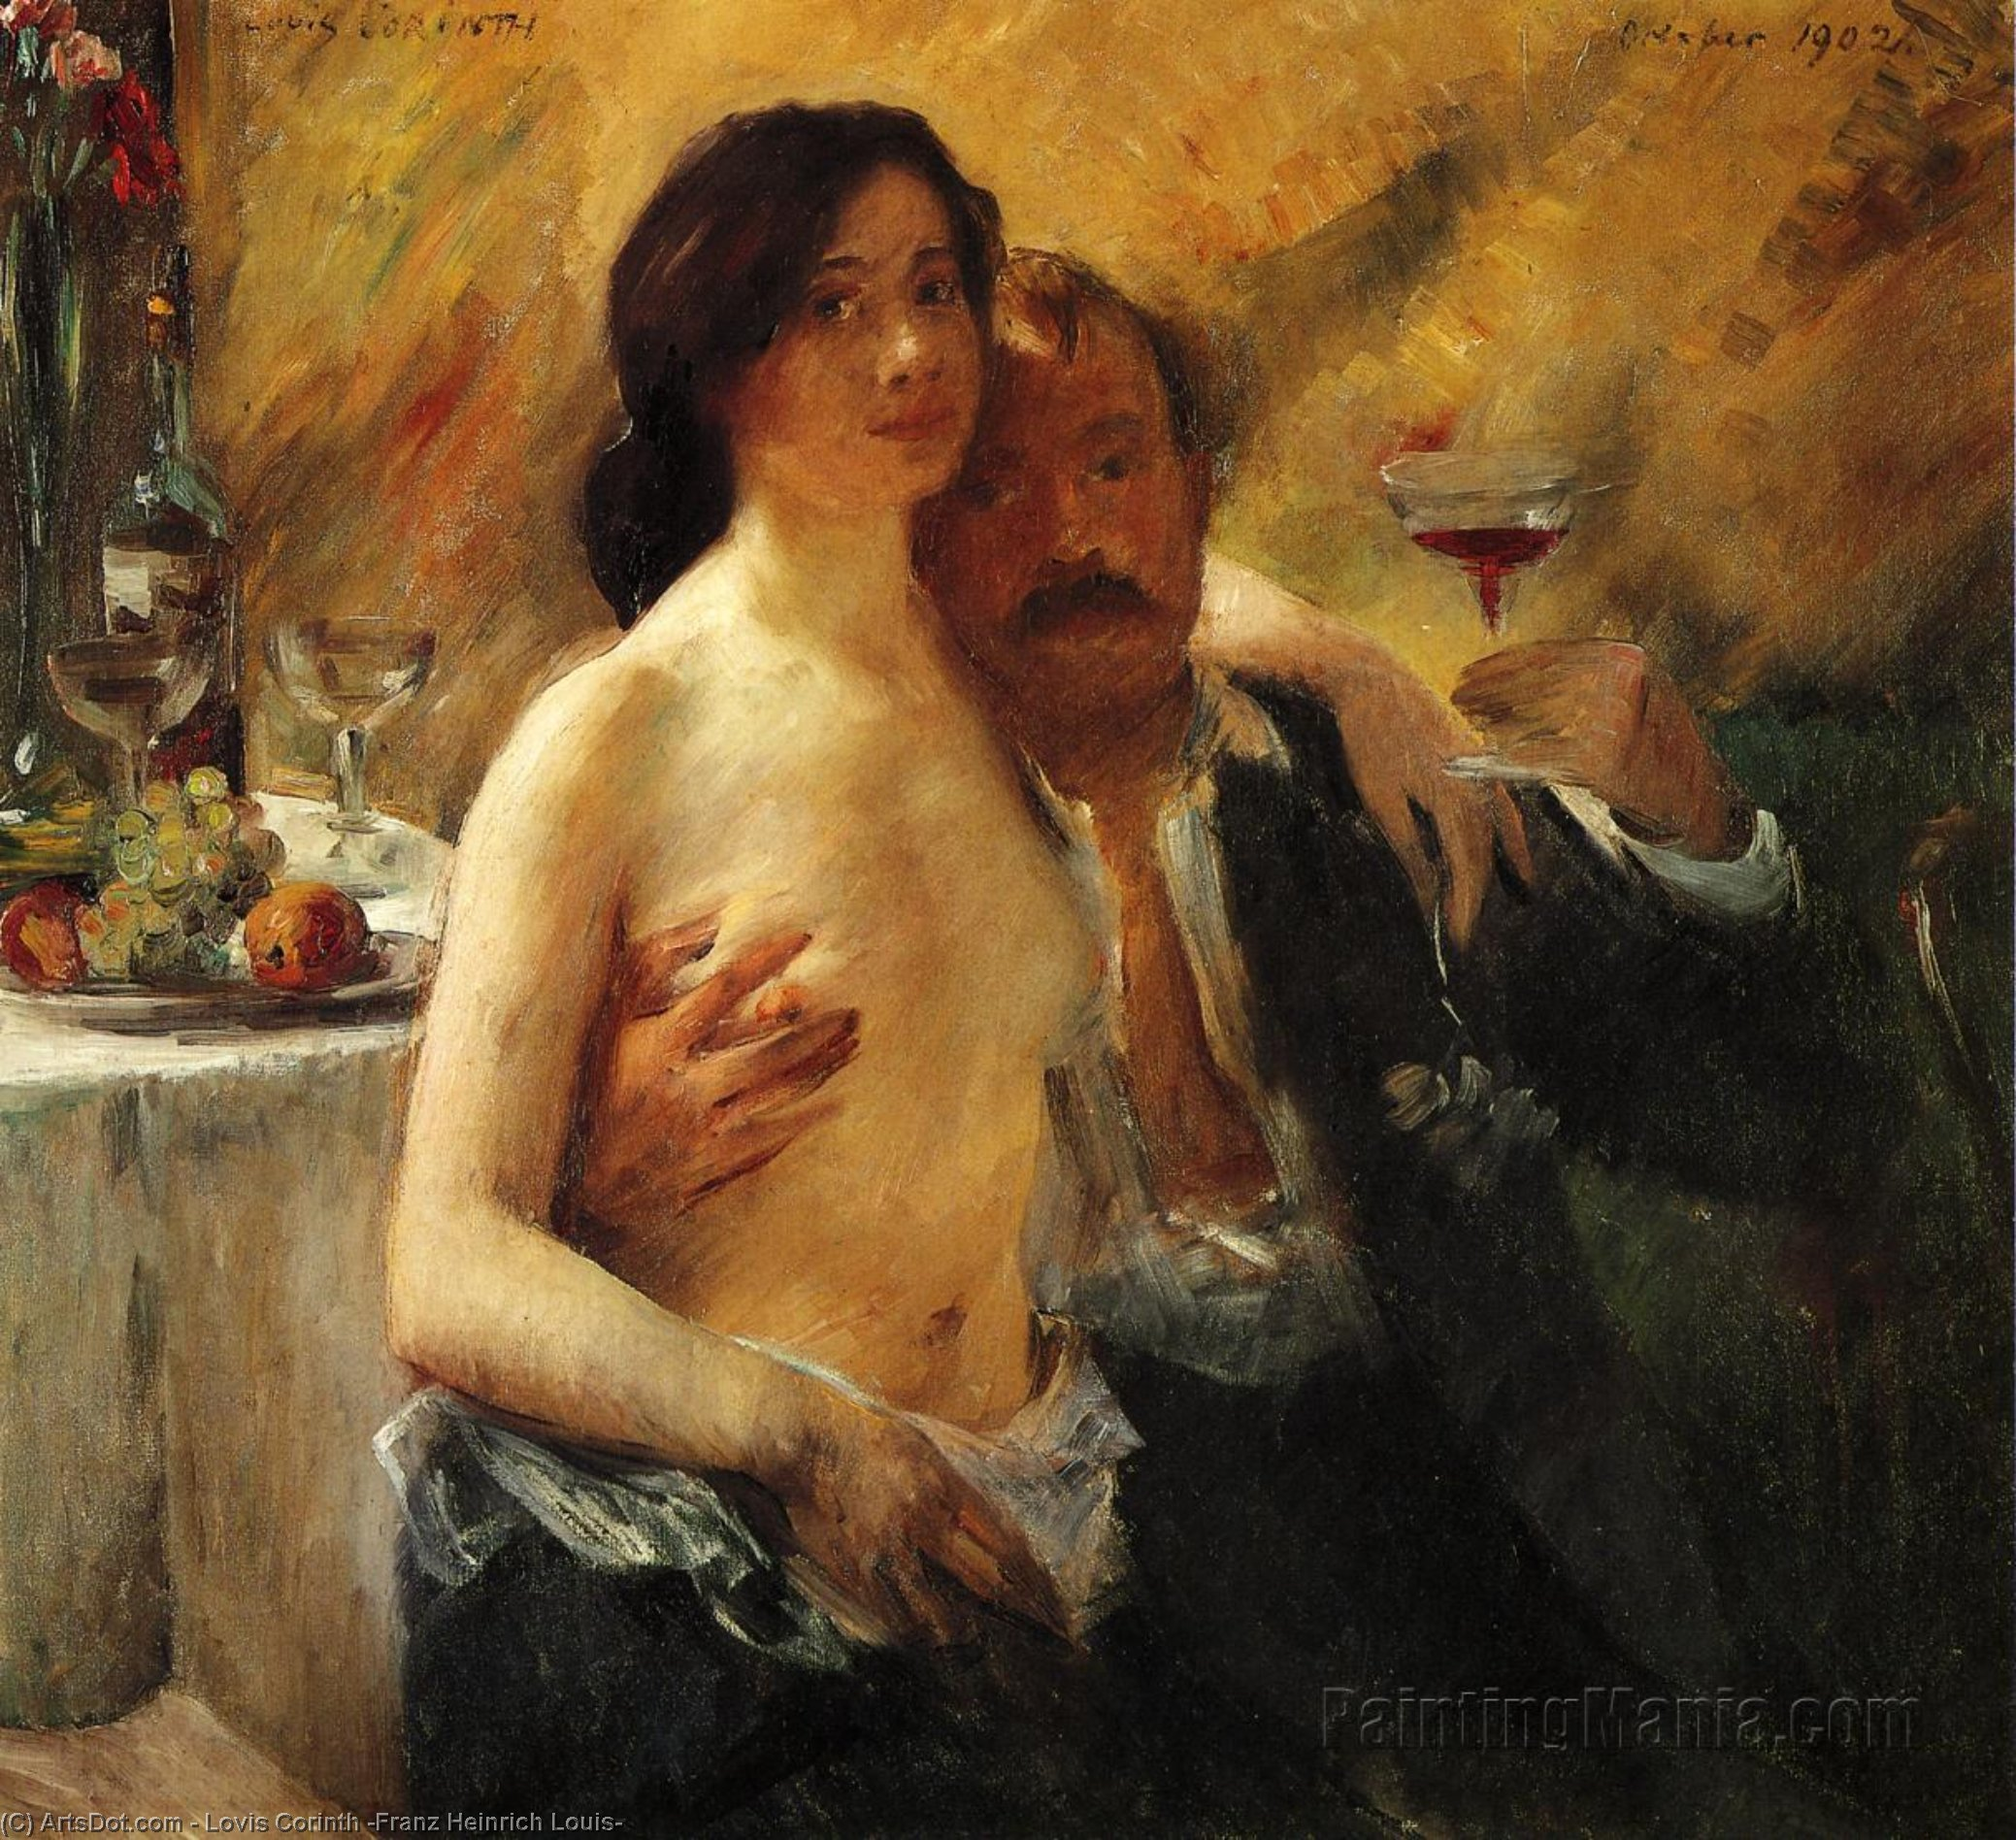 Self Portrait with Charlotte Berend and a Glass of Champagne, Oil On Canvas by Lovis Corinth (Franz Heinrich Louis) (1858-1925, Netherlands)